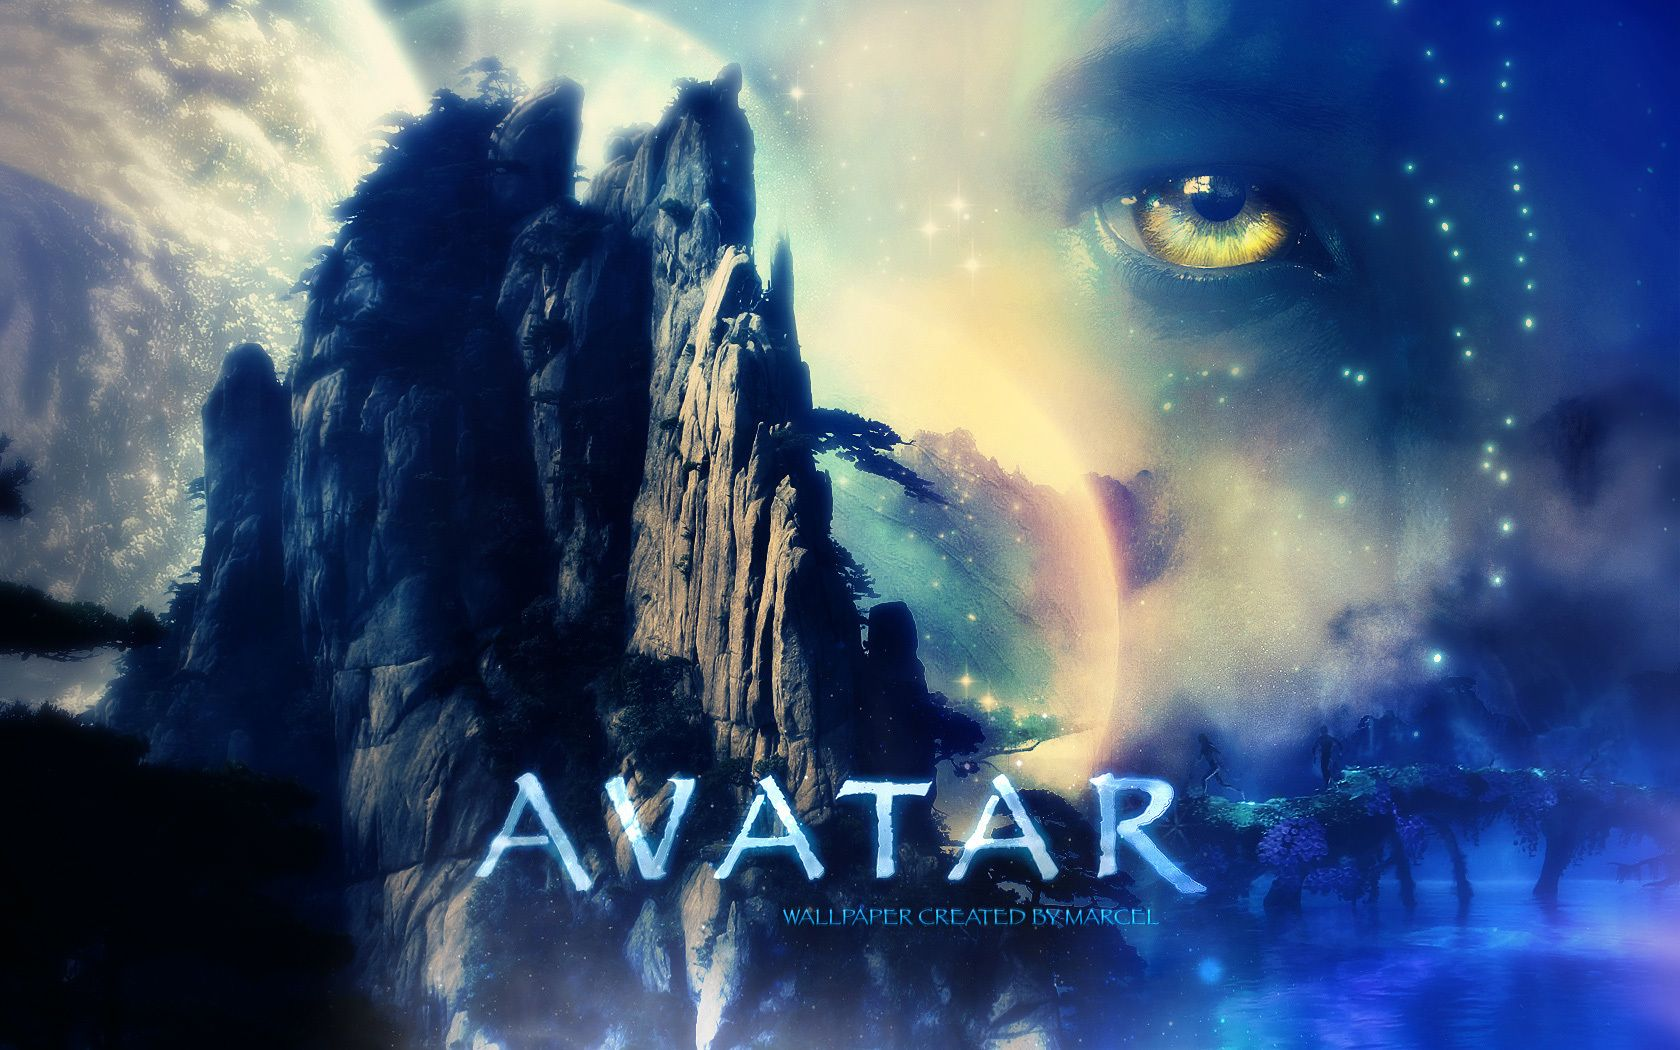 seeing avatar on 3d was one of the things that helped bring the